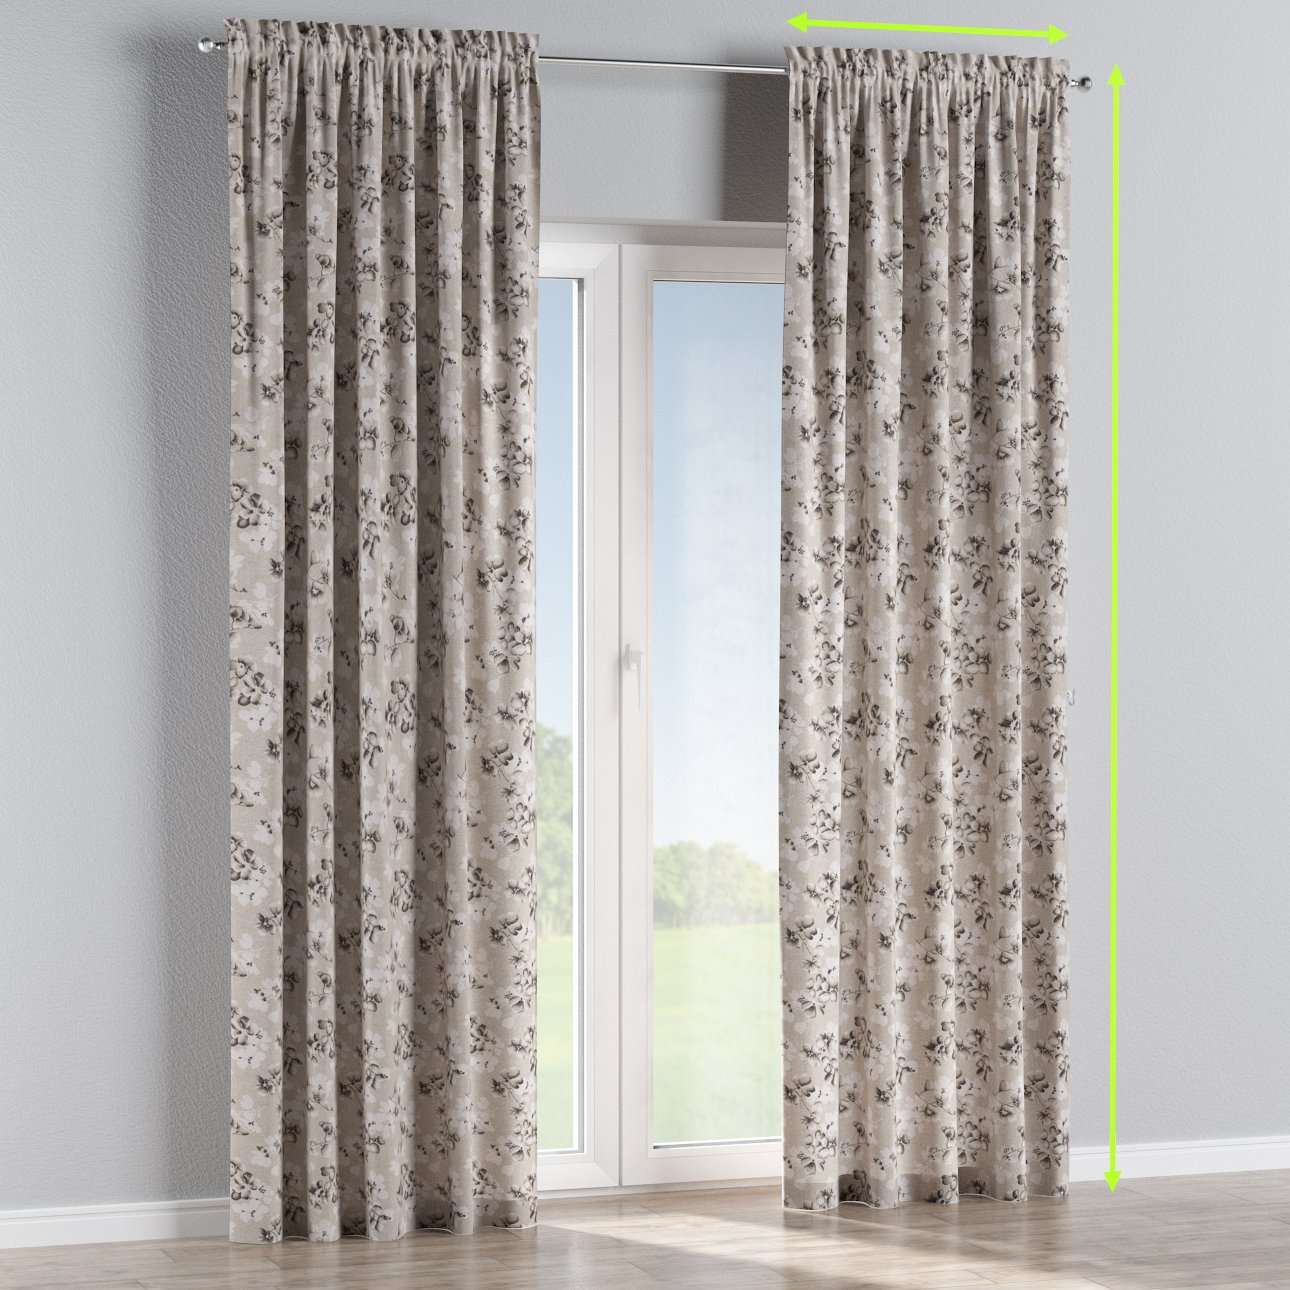 Slot and frill curtains in collection Rustica, fabric: 138-14